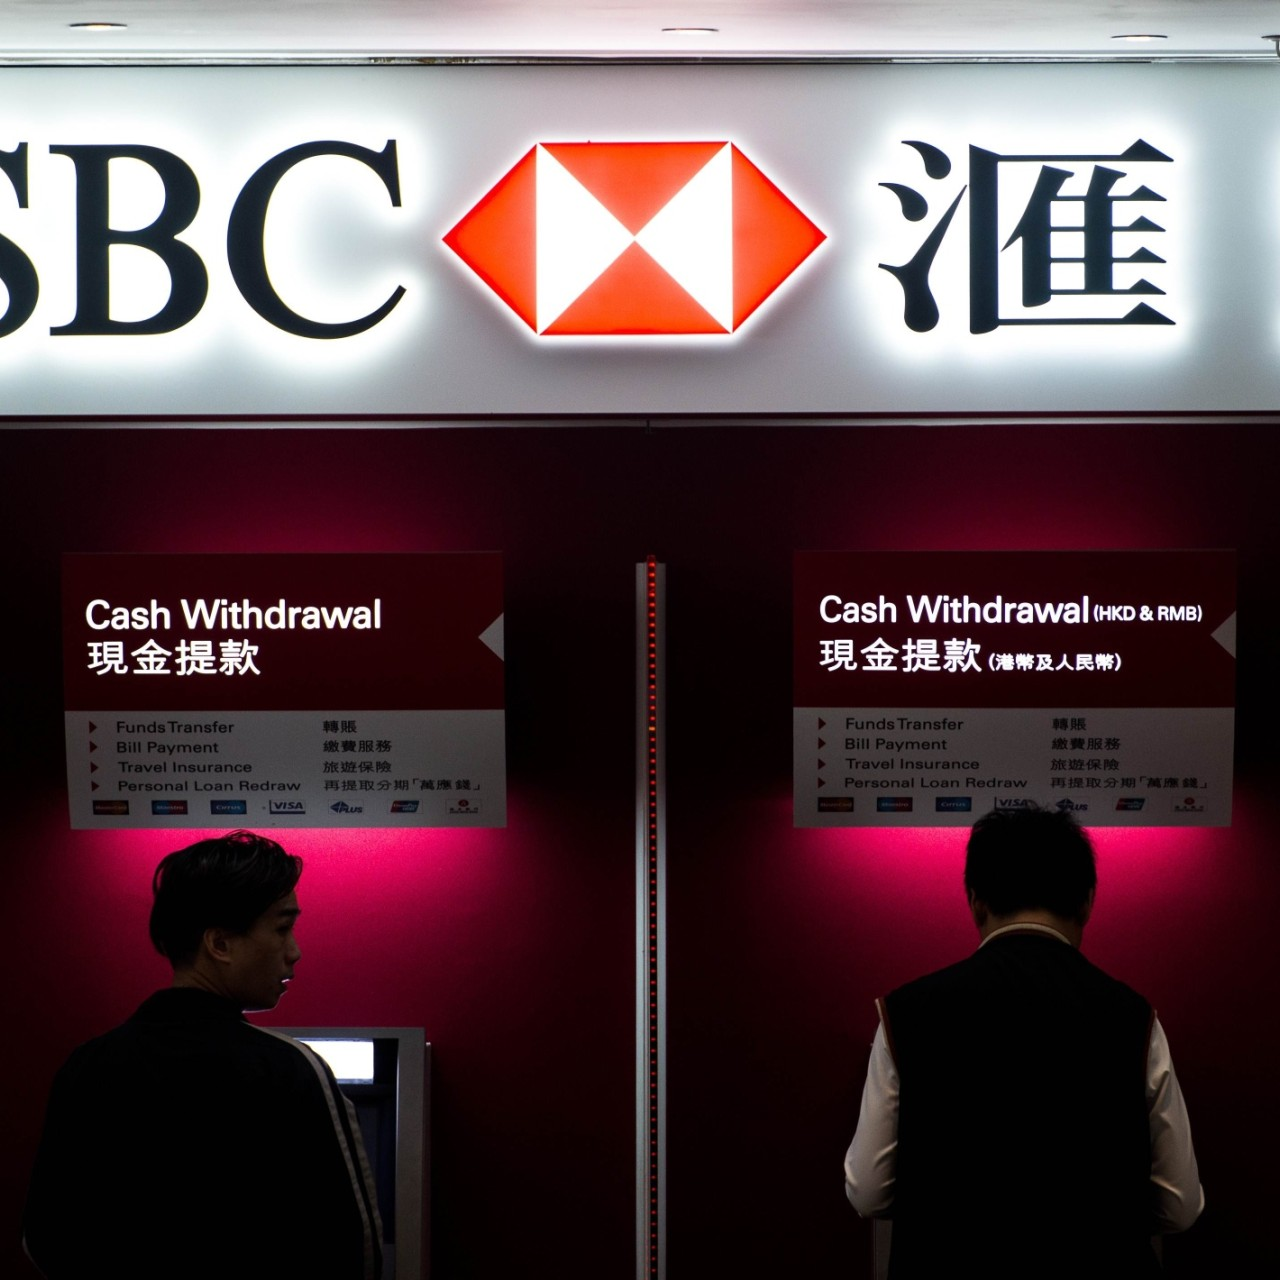 HSBC backs down over ATM cards that leave customers stranded